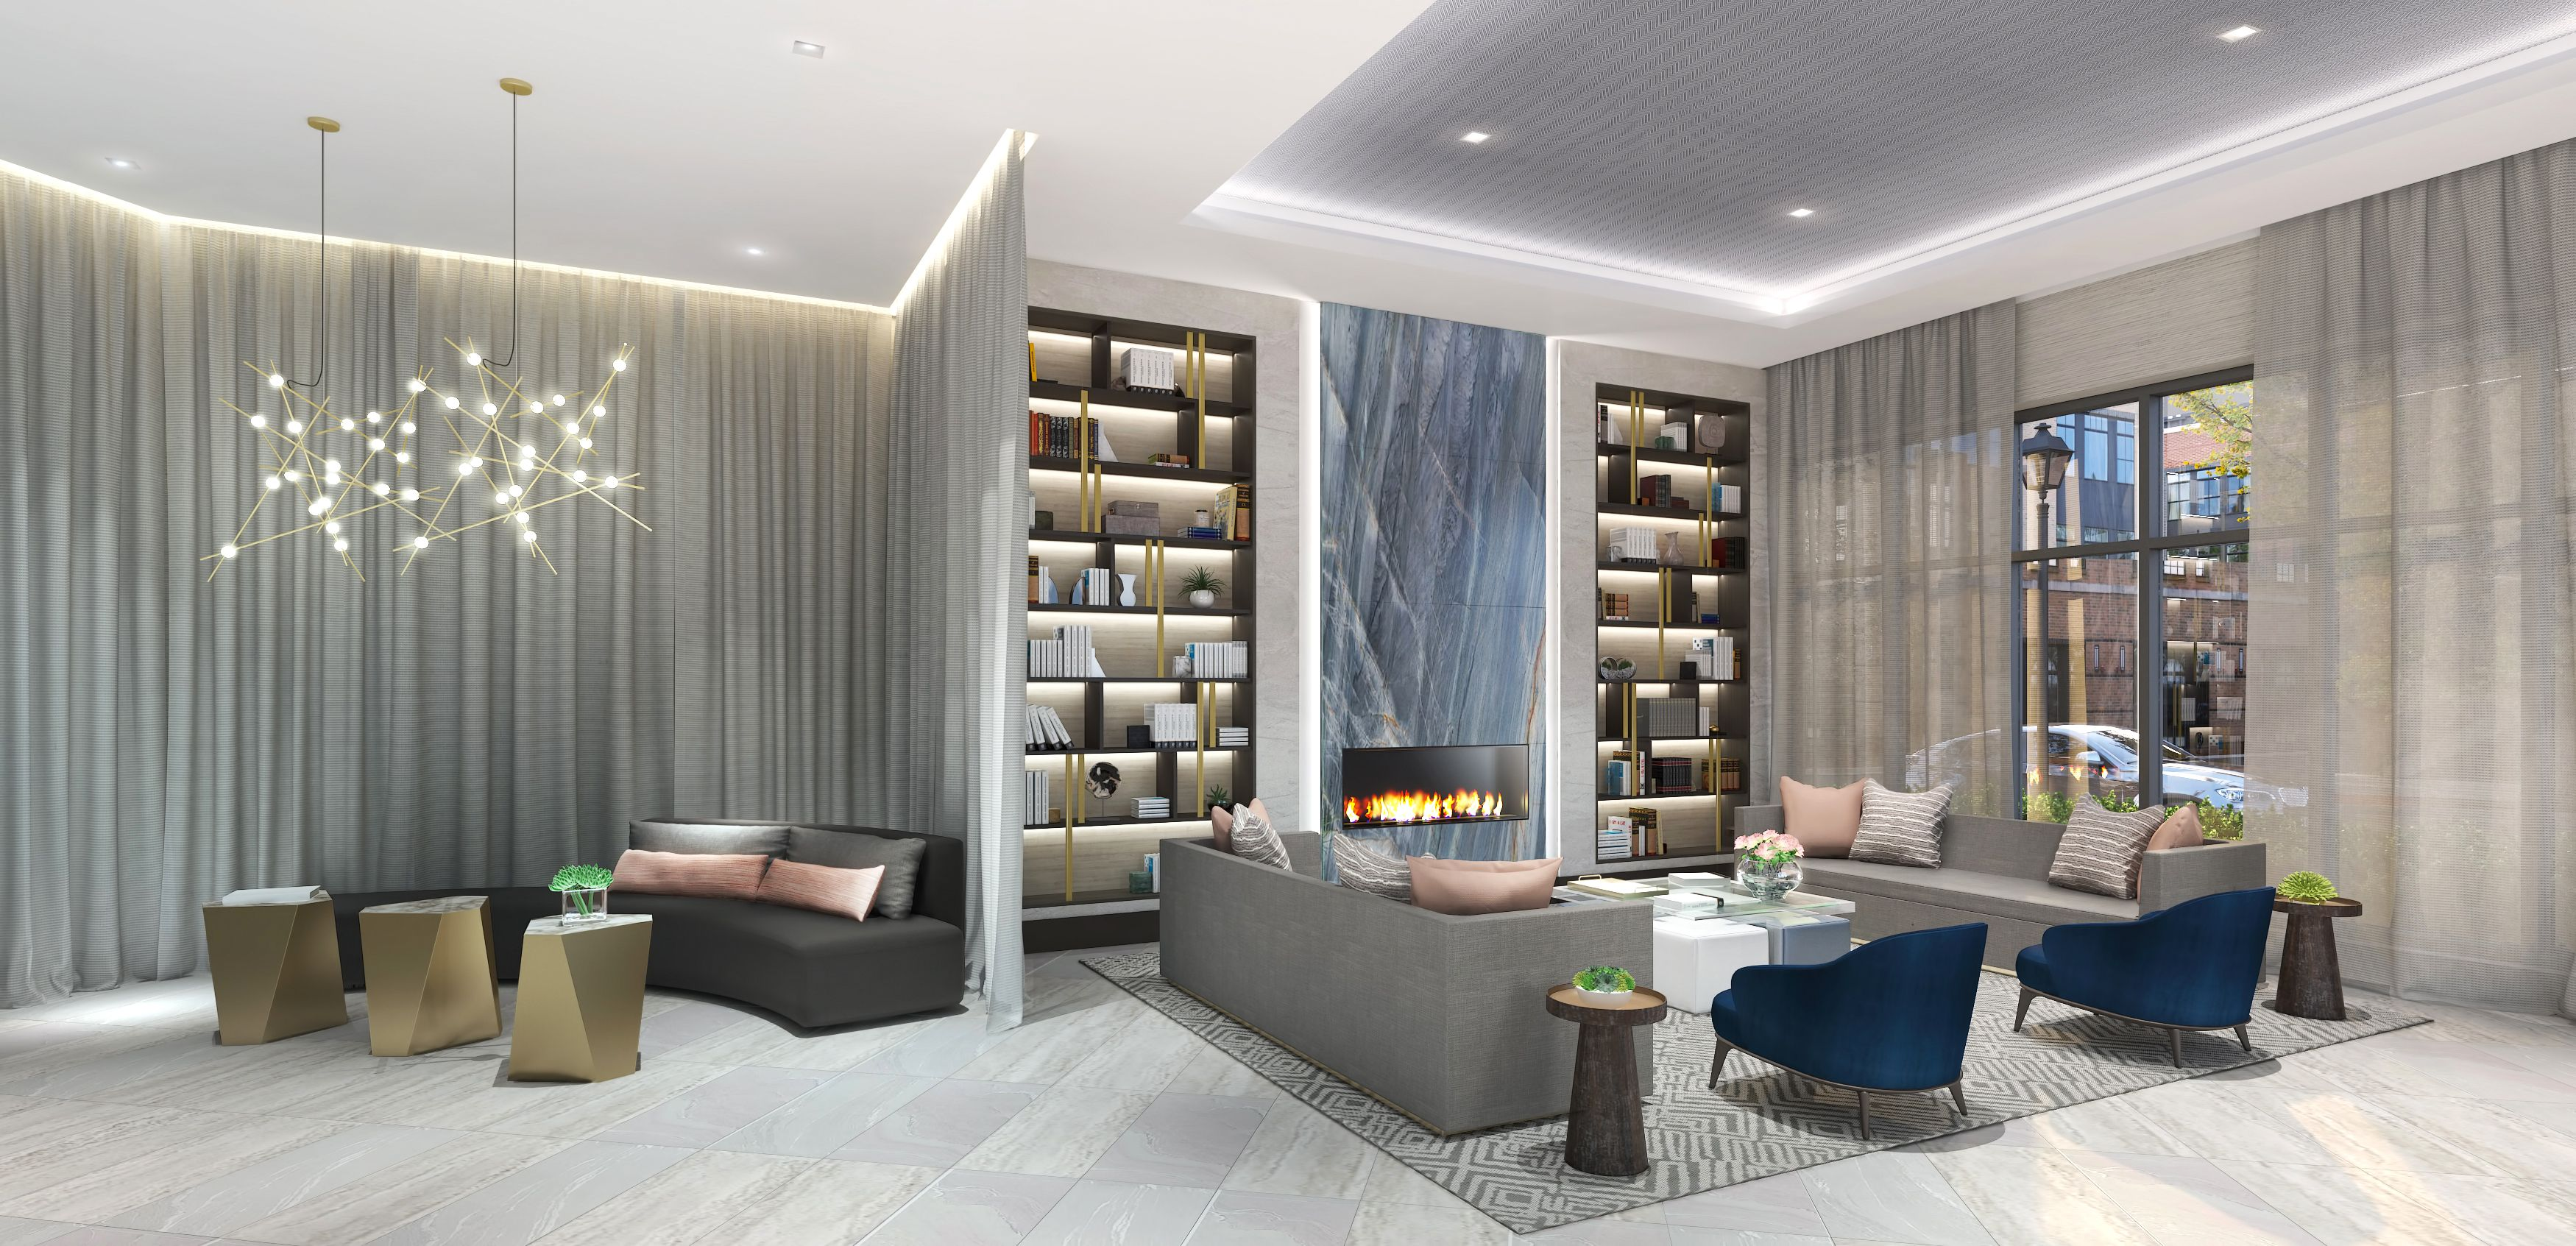 Living Area featured in the Residence D6 By MUSE in Washington, VA